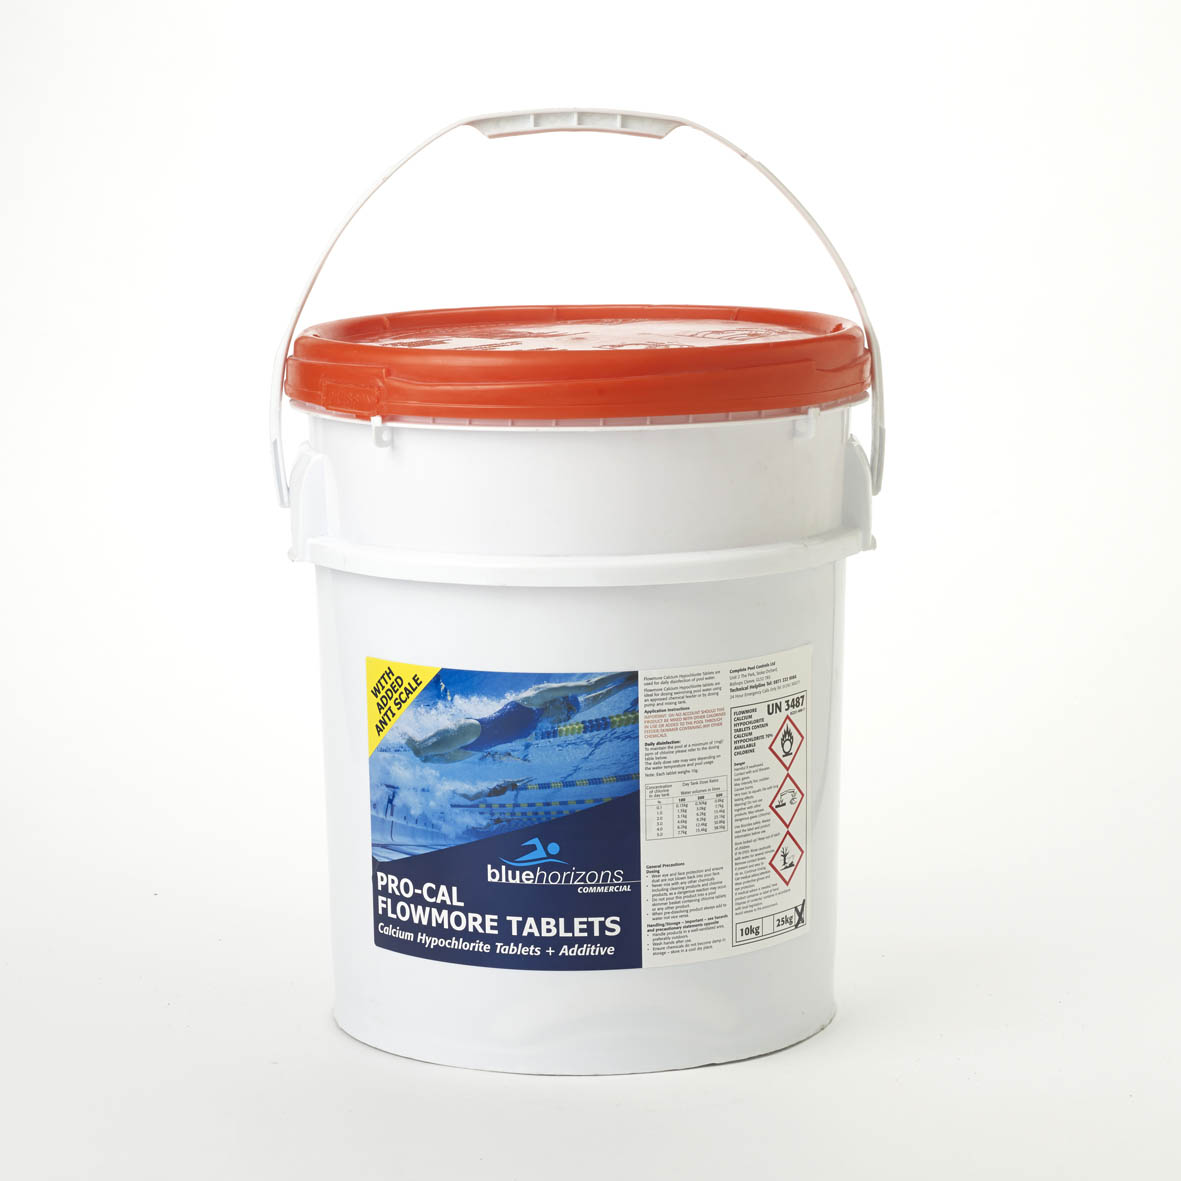 Swimming pool chemicals and equipment mike payne pool - Swimming pool chemicals suppliers ...